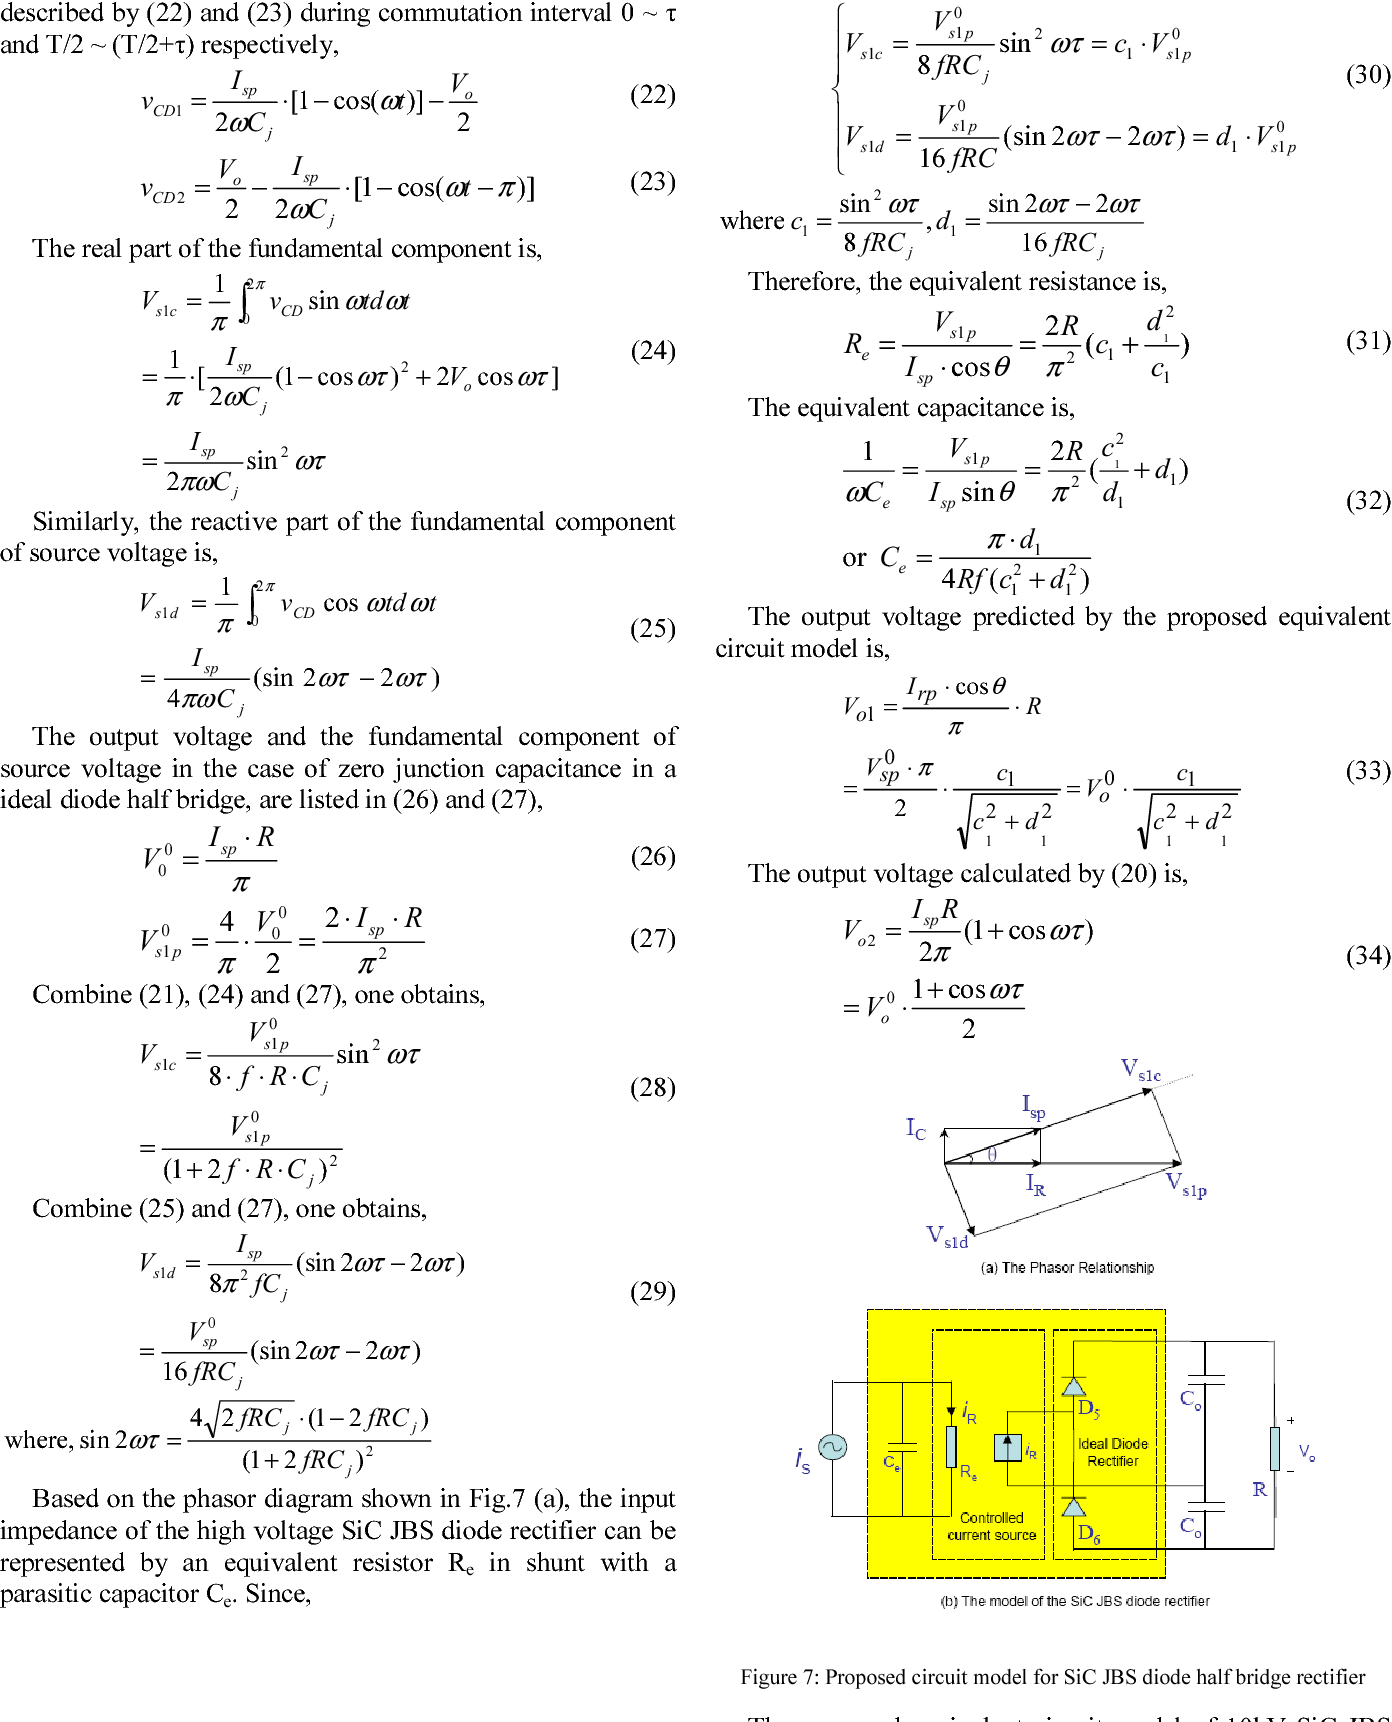 Modeling Of The Impact Diode Junction Capacitance On High Voltage Multiplier With Diodes And Capacitors Frequency Rectifiers Based 10kv Sic Jbs Semantic Scholar